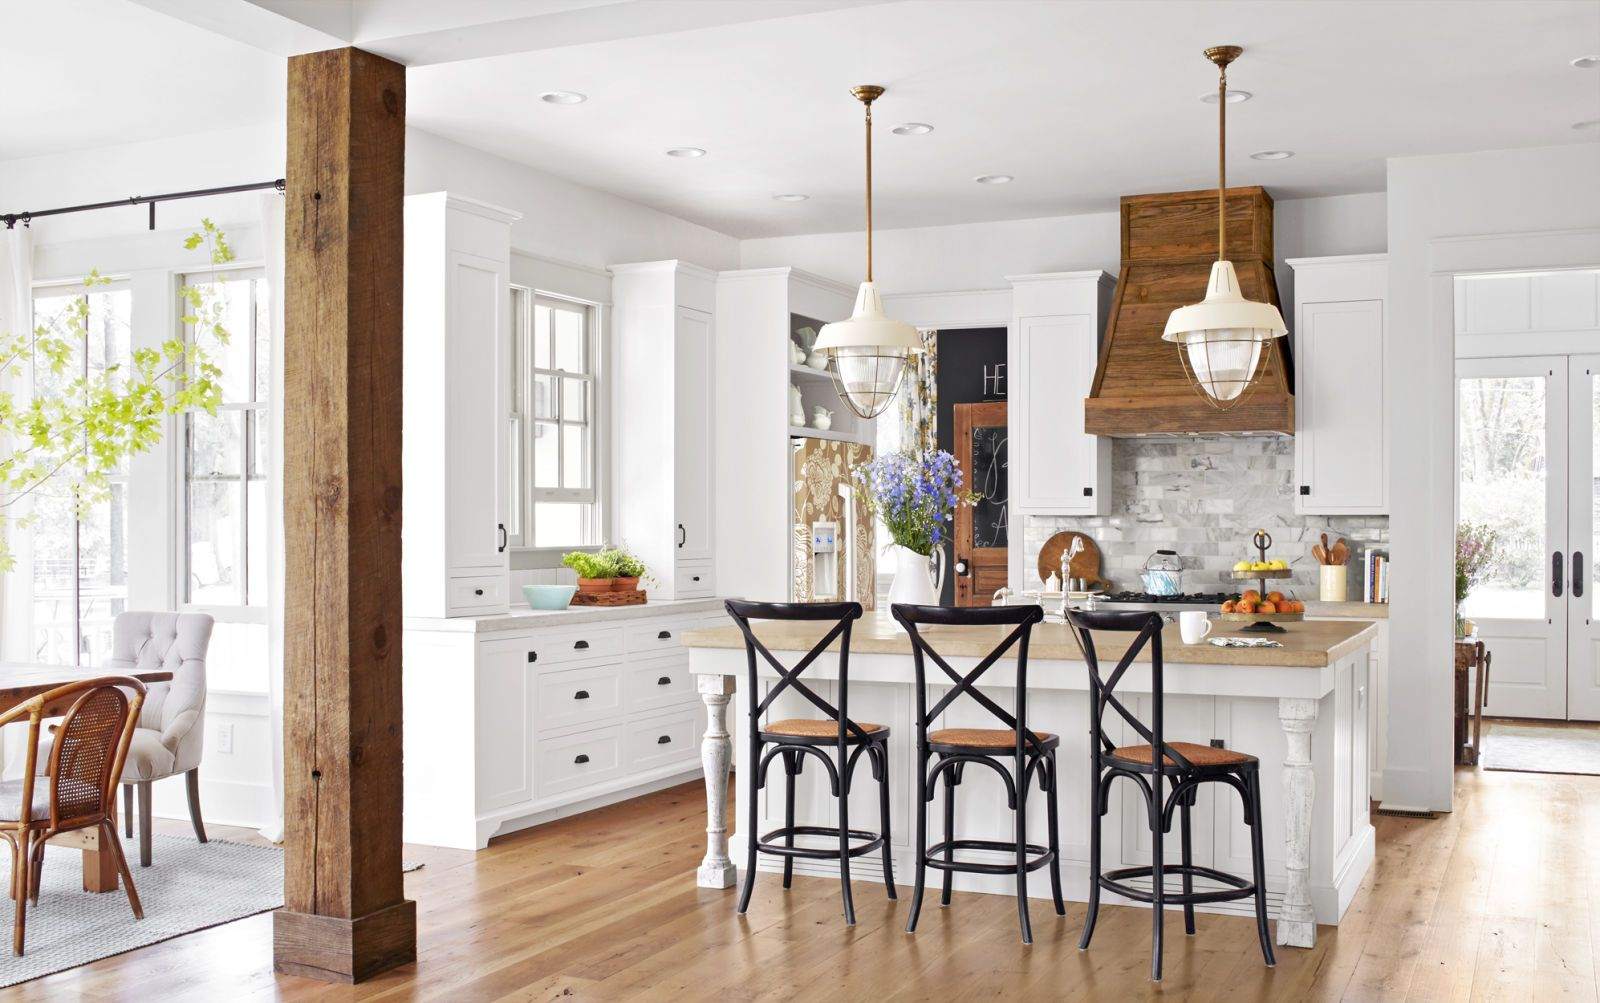 Step Inside One of the Prettiest Country Farmhouses We've